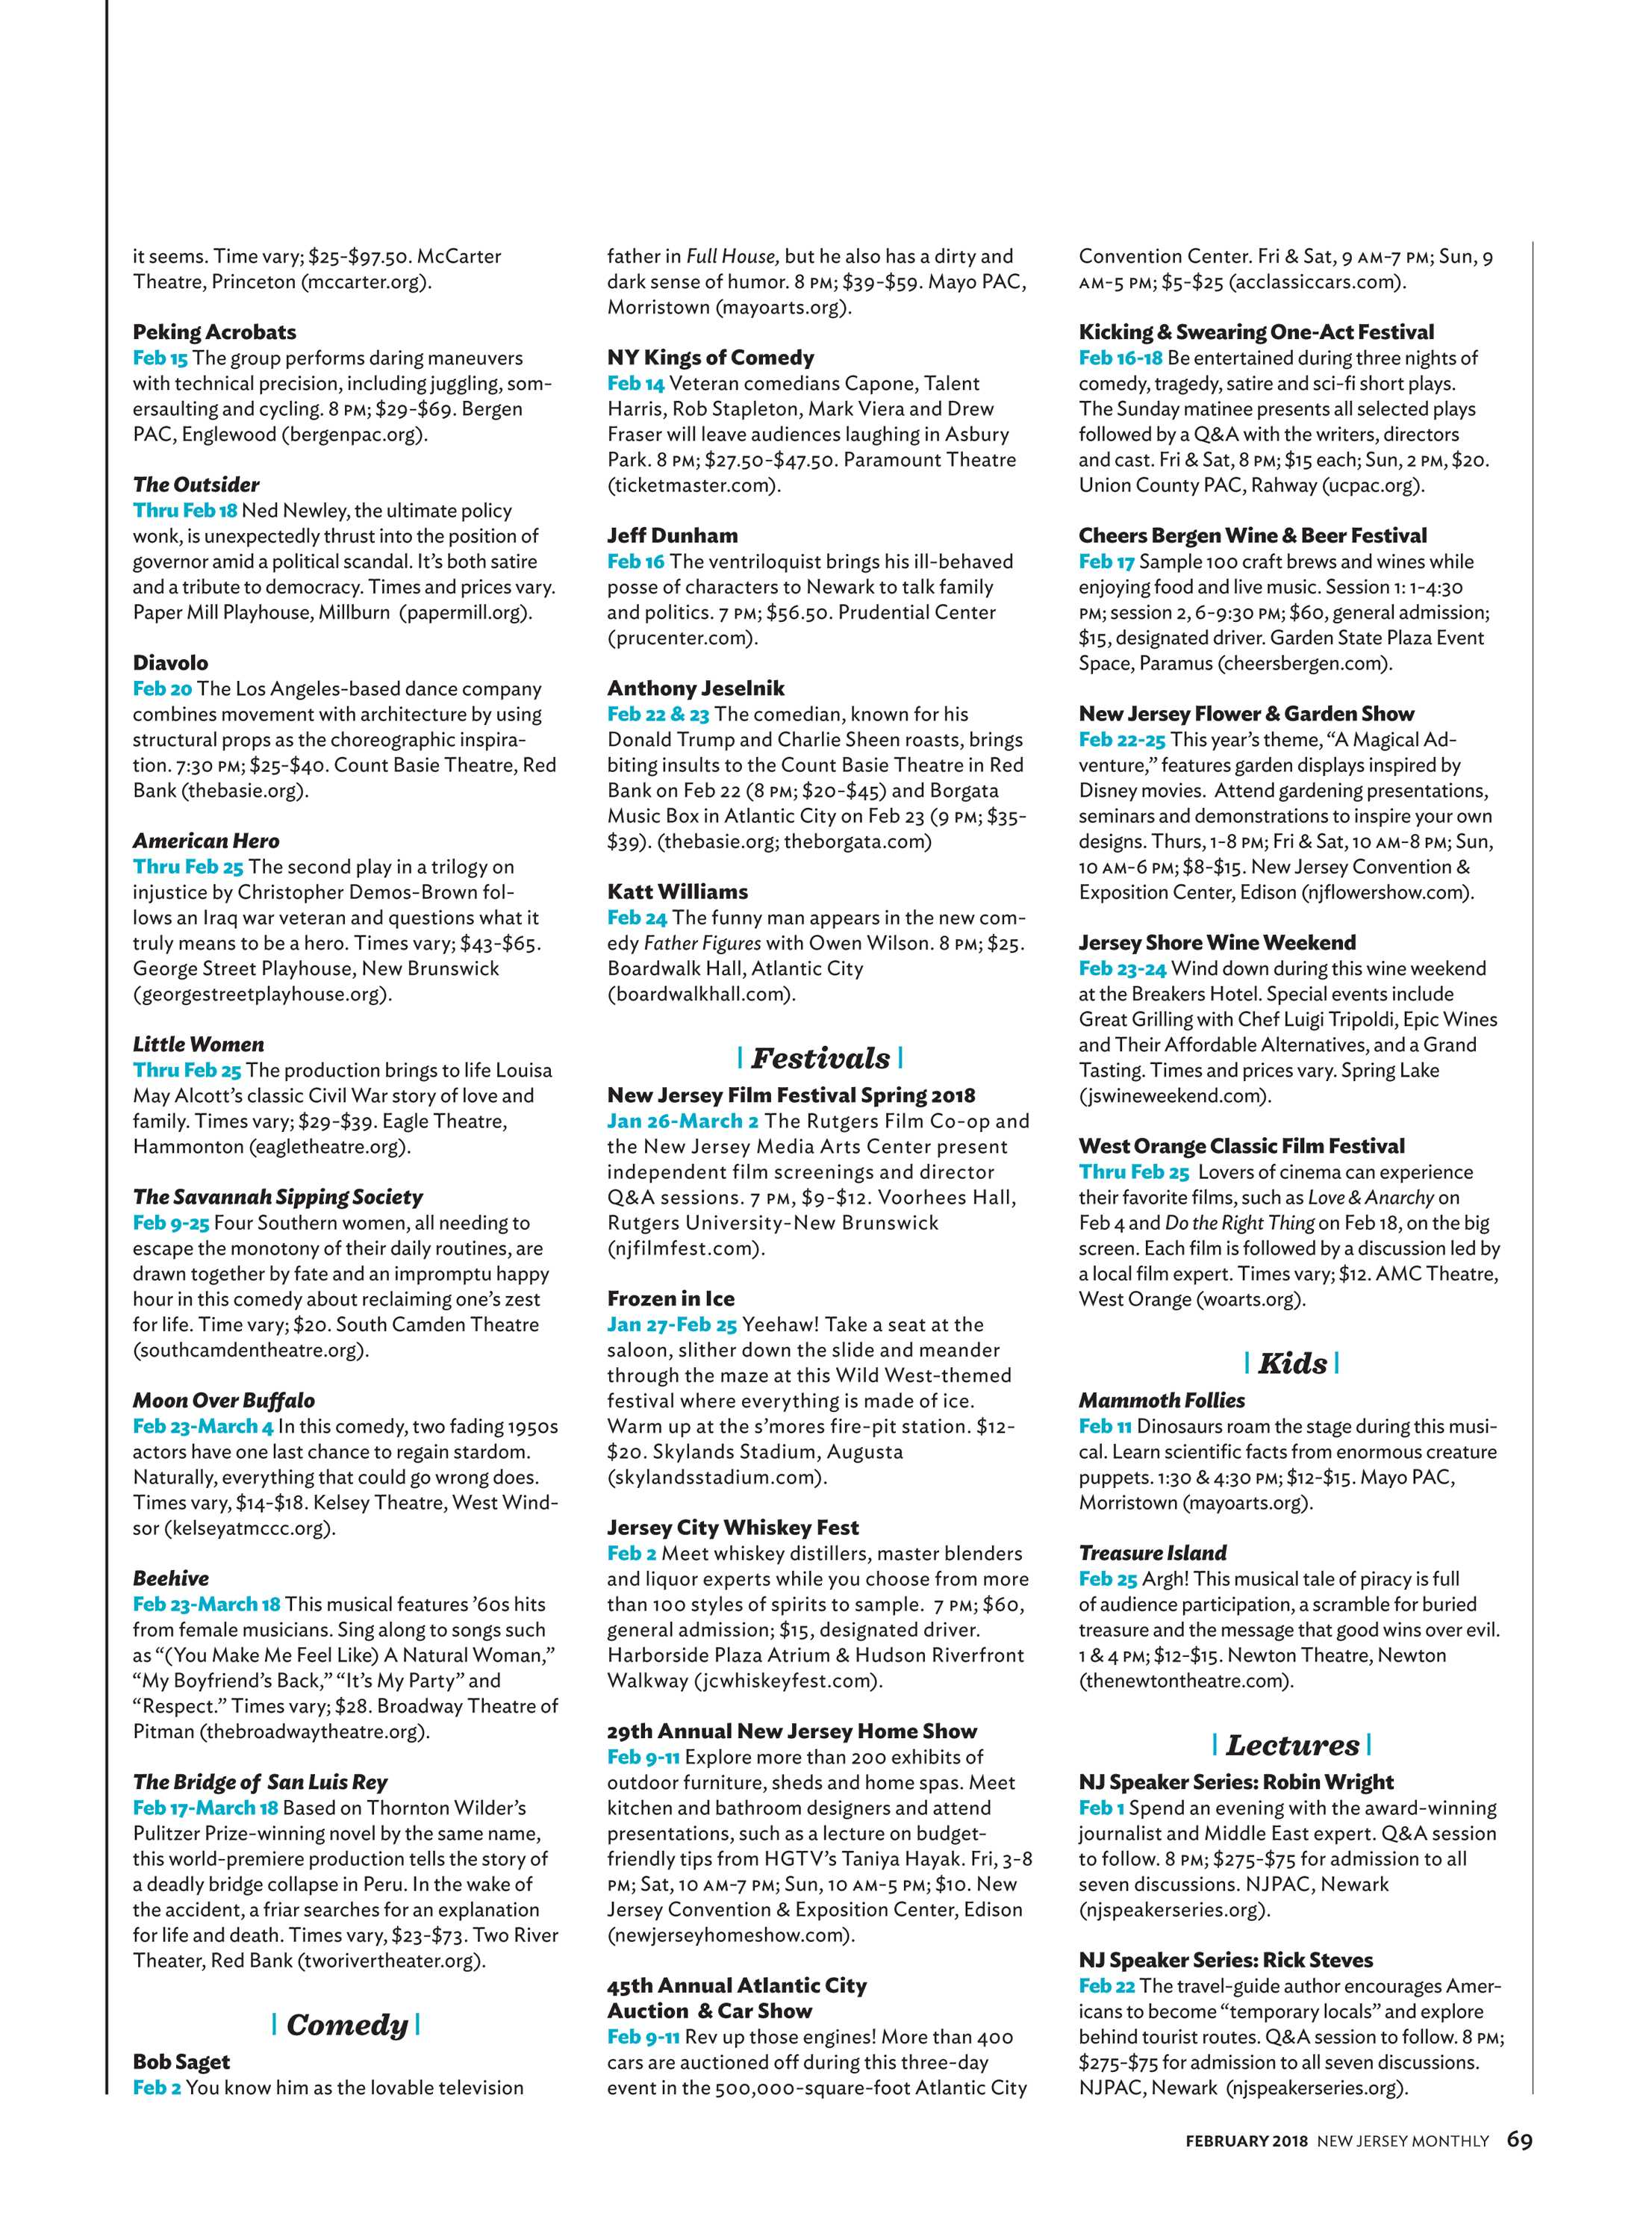 NJ Monthly - February 2018 - page 69